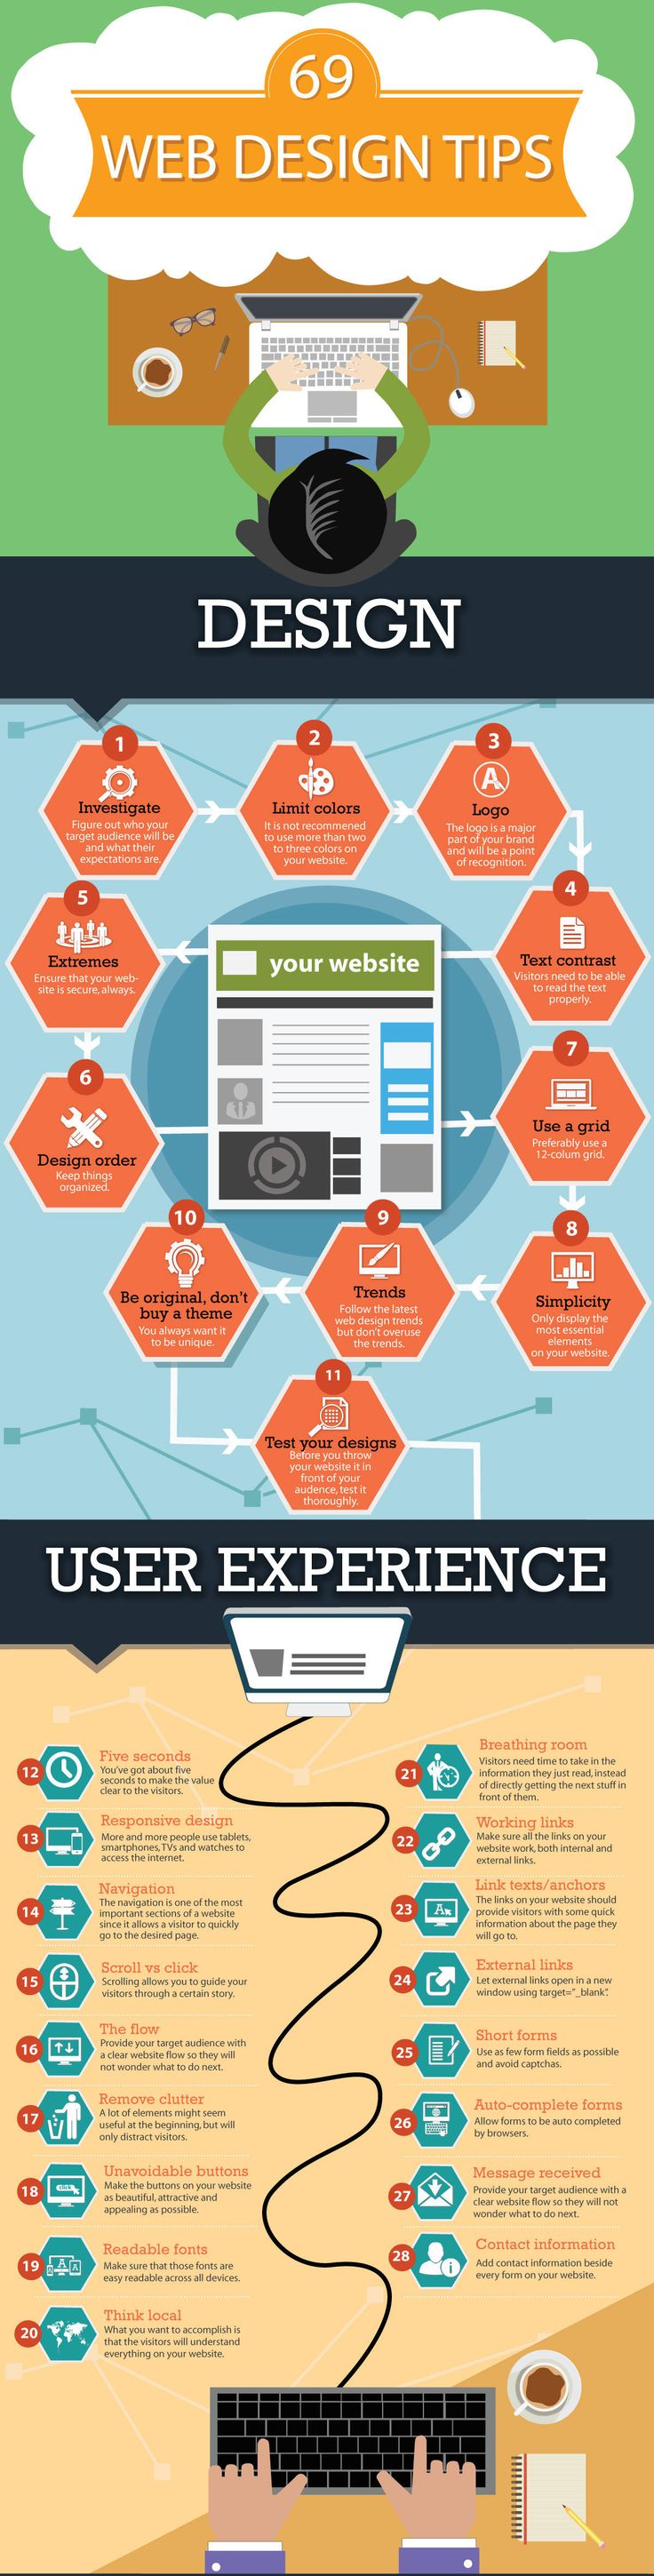 69 Tips For Designing The Perfect Website.